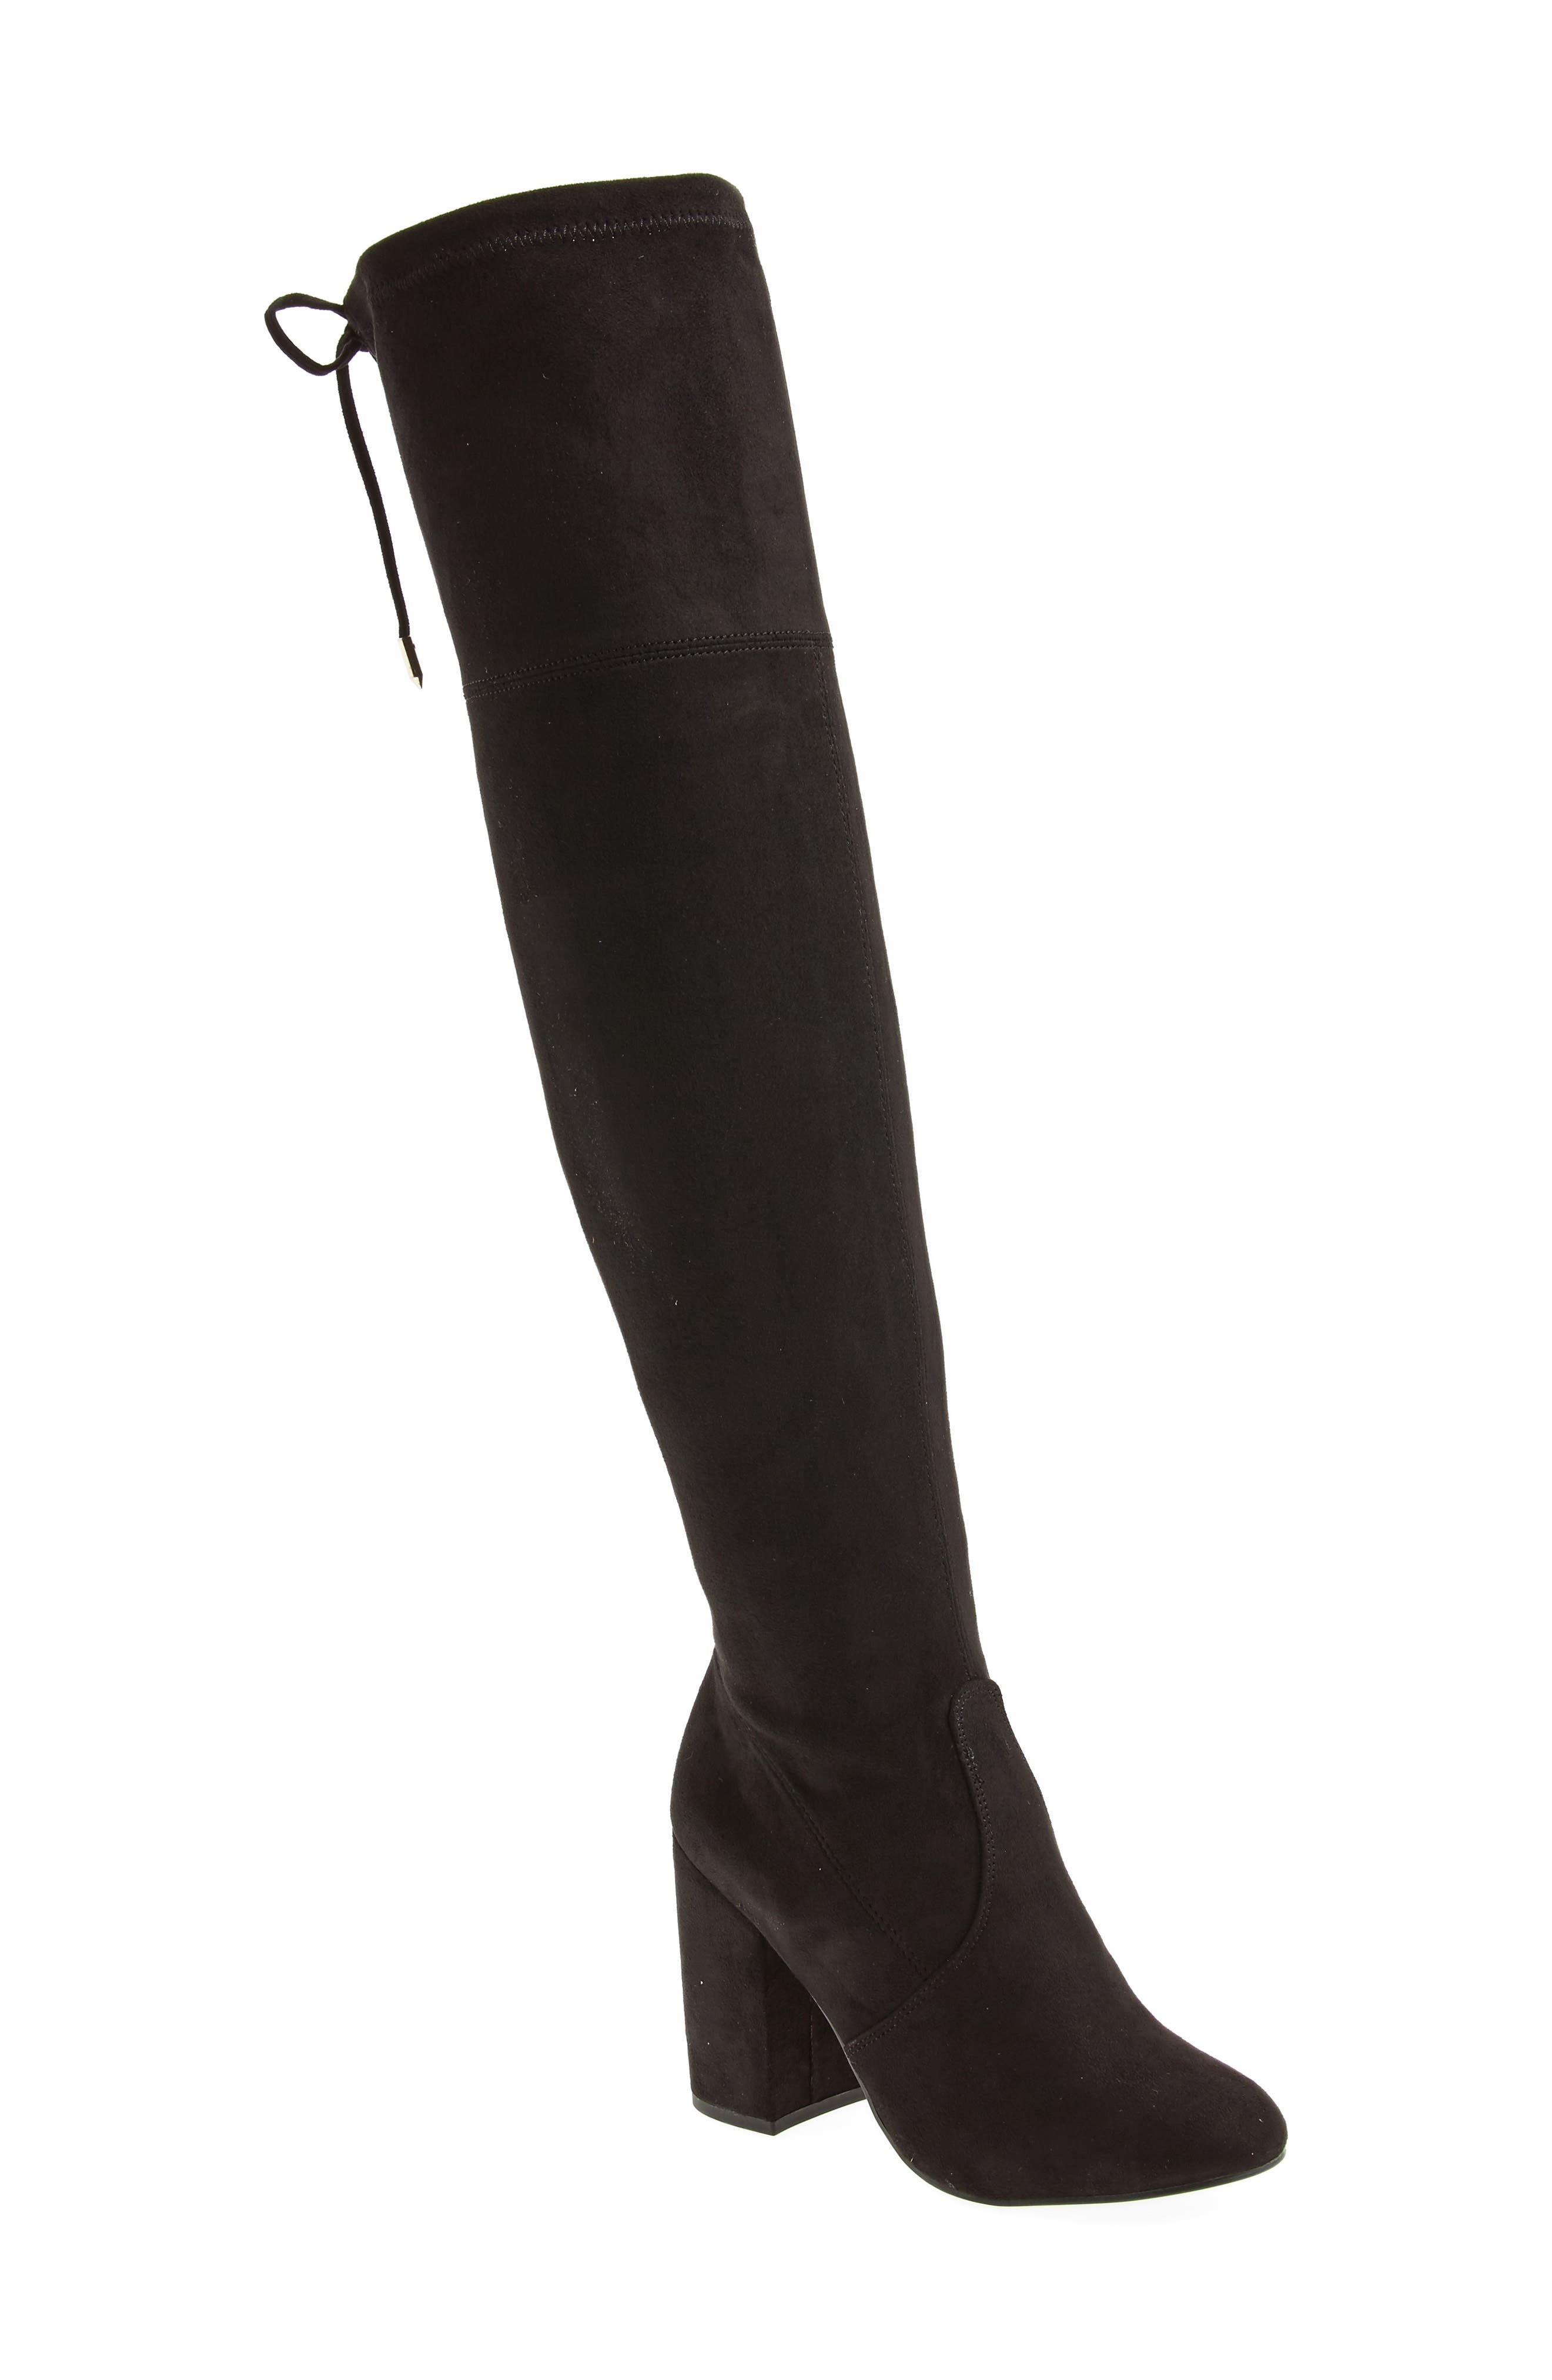 Alternate Image 1 Selected - Steve Madden Niela Stretchy Over the Knee Boot (Women)